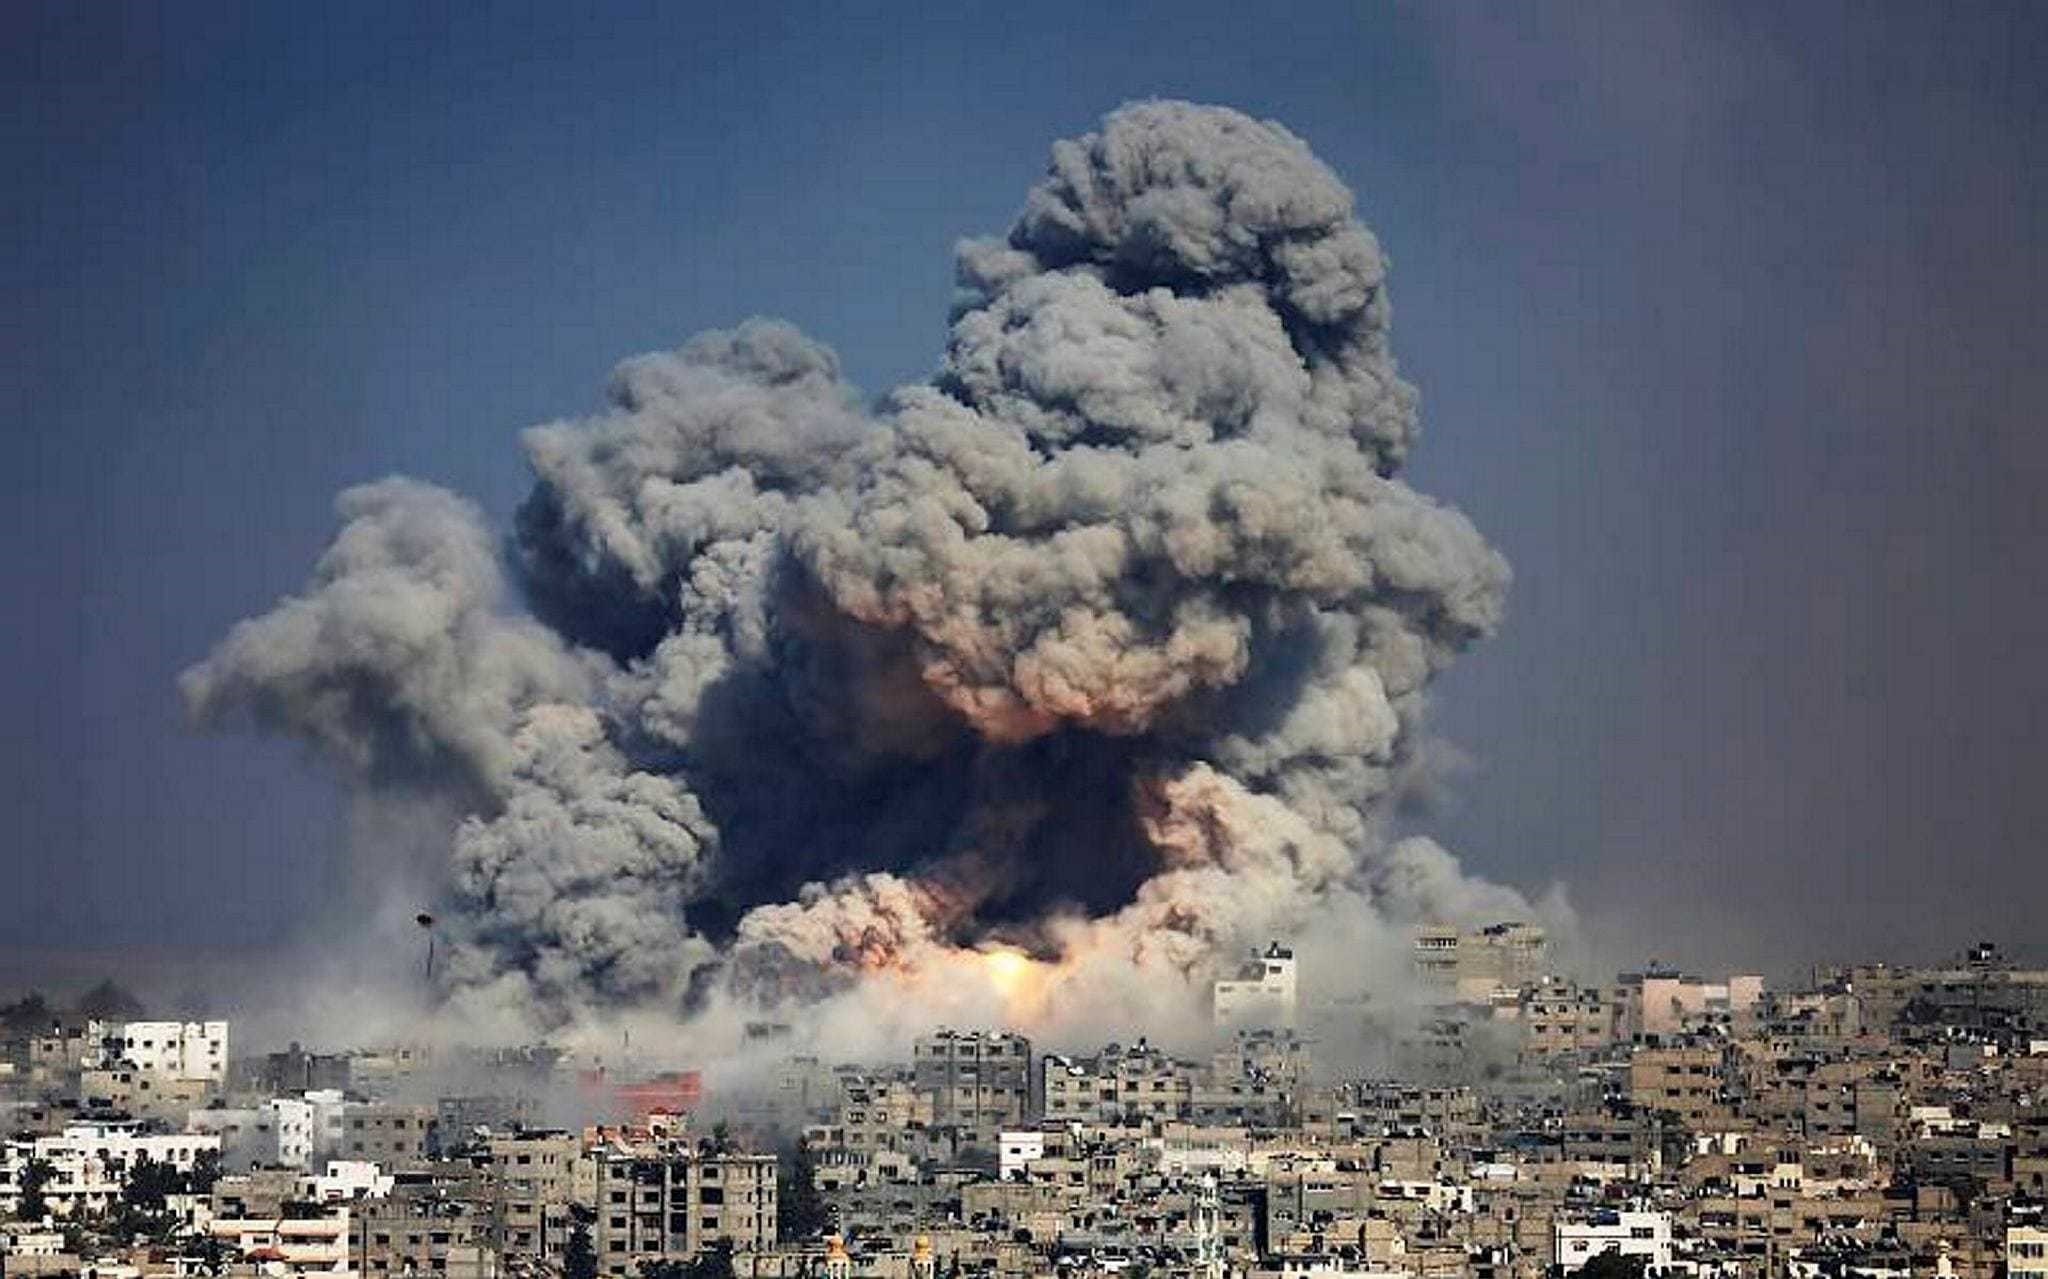 Smoke and fire from an Israeli strike rose over Gaza City on July 29, 2014.